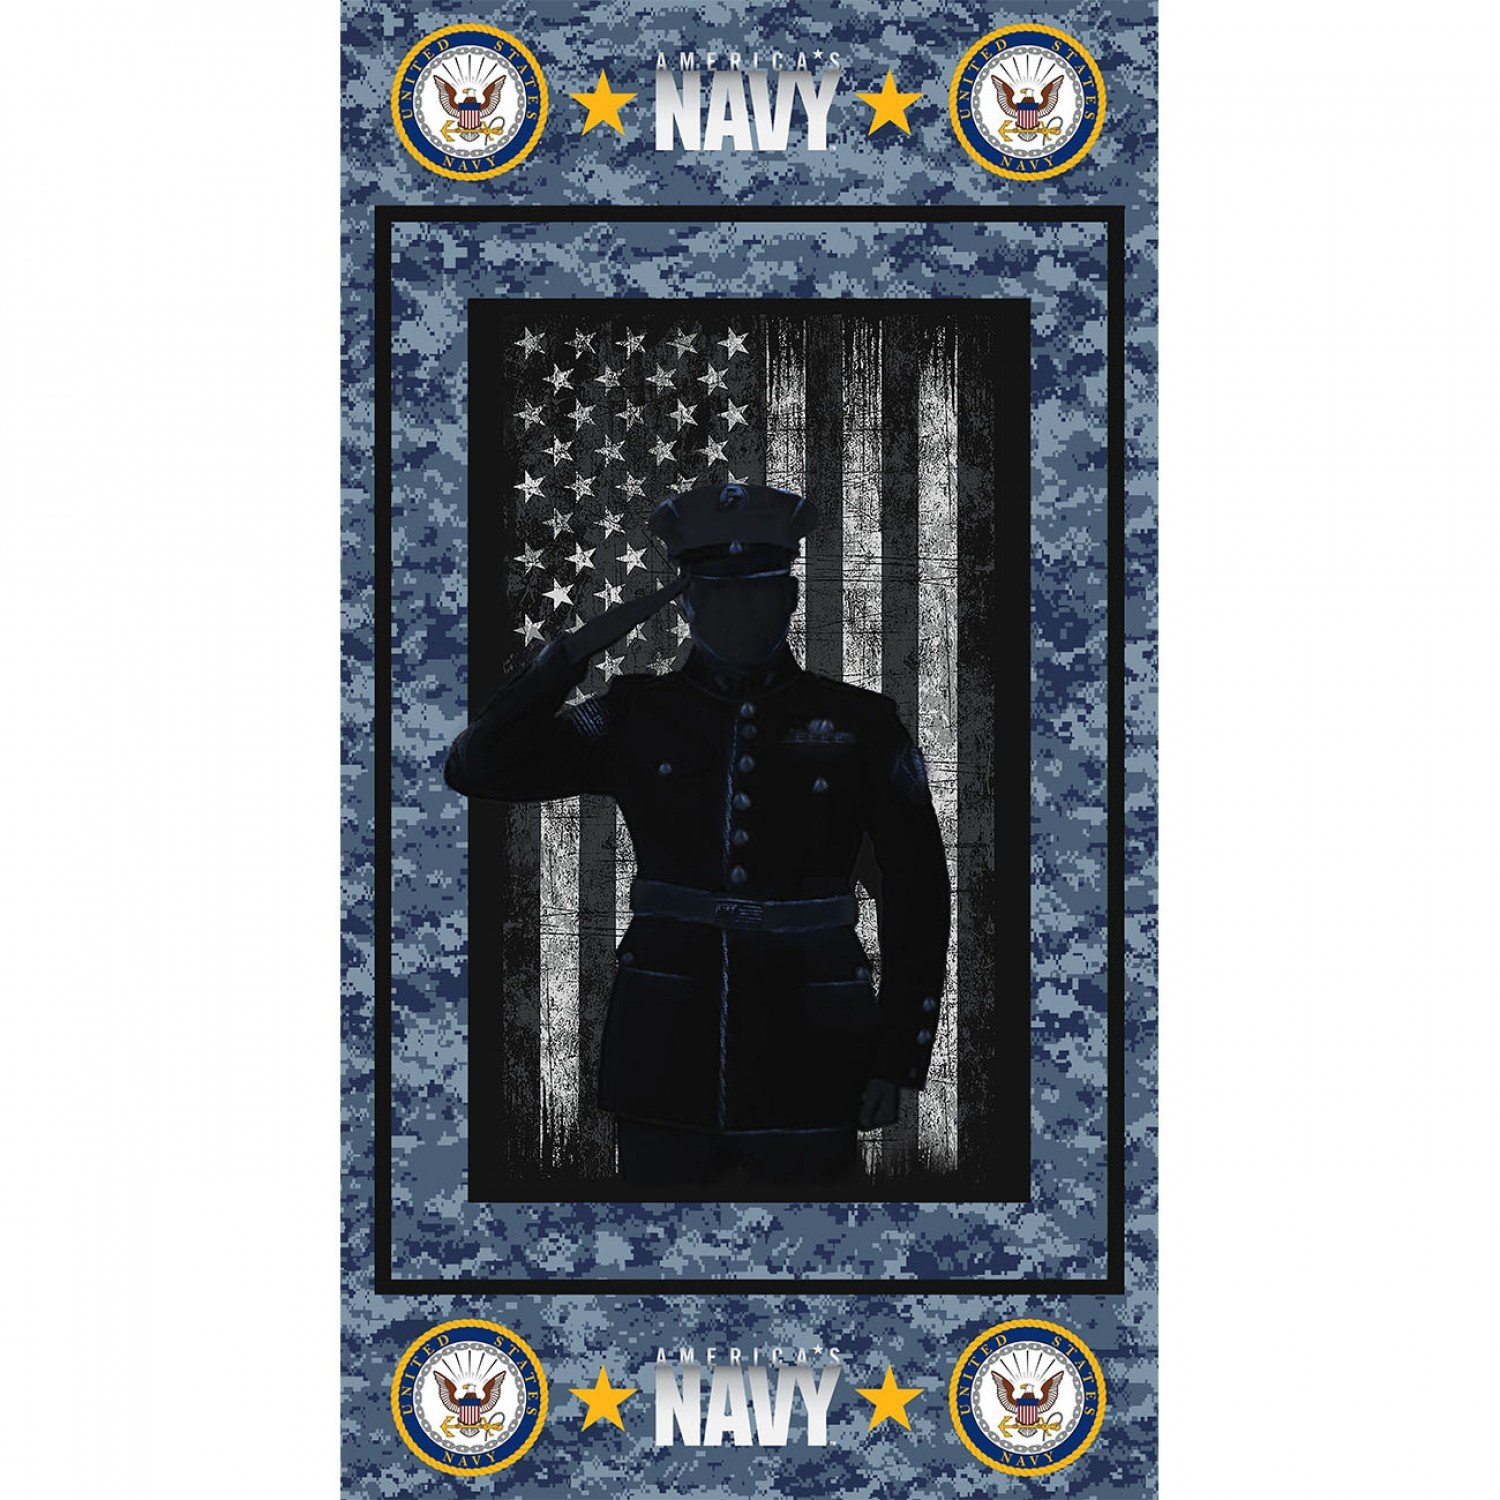 Sykel-Military Cotton 1195-N Navy 24 Panel